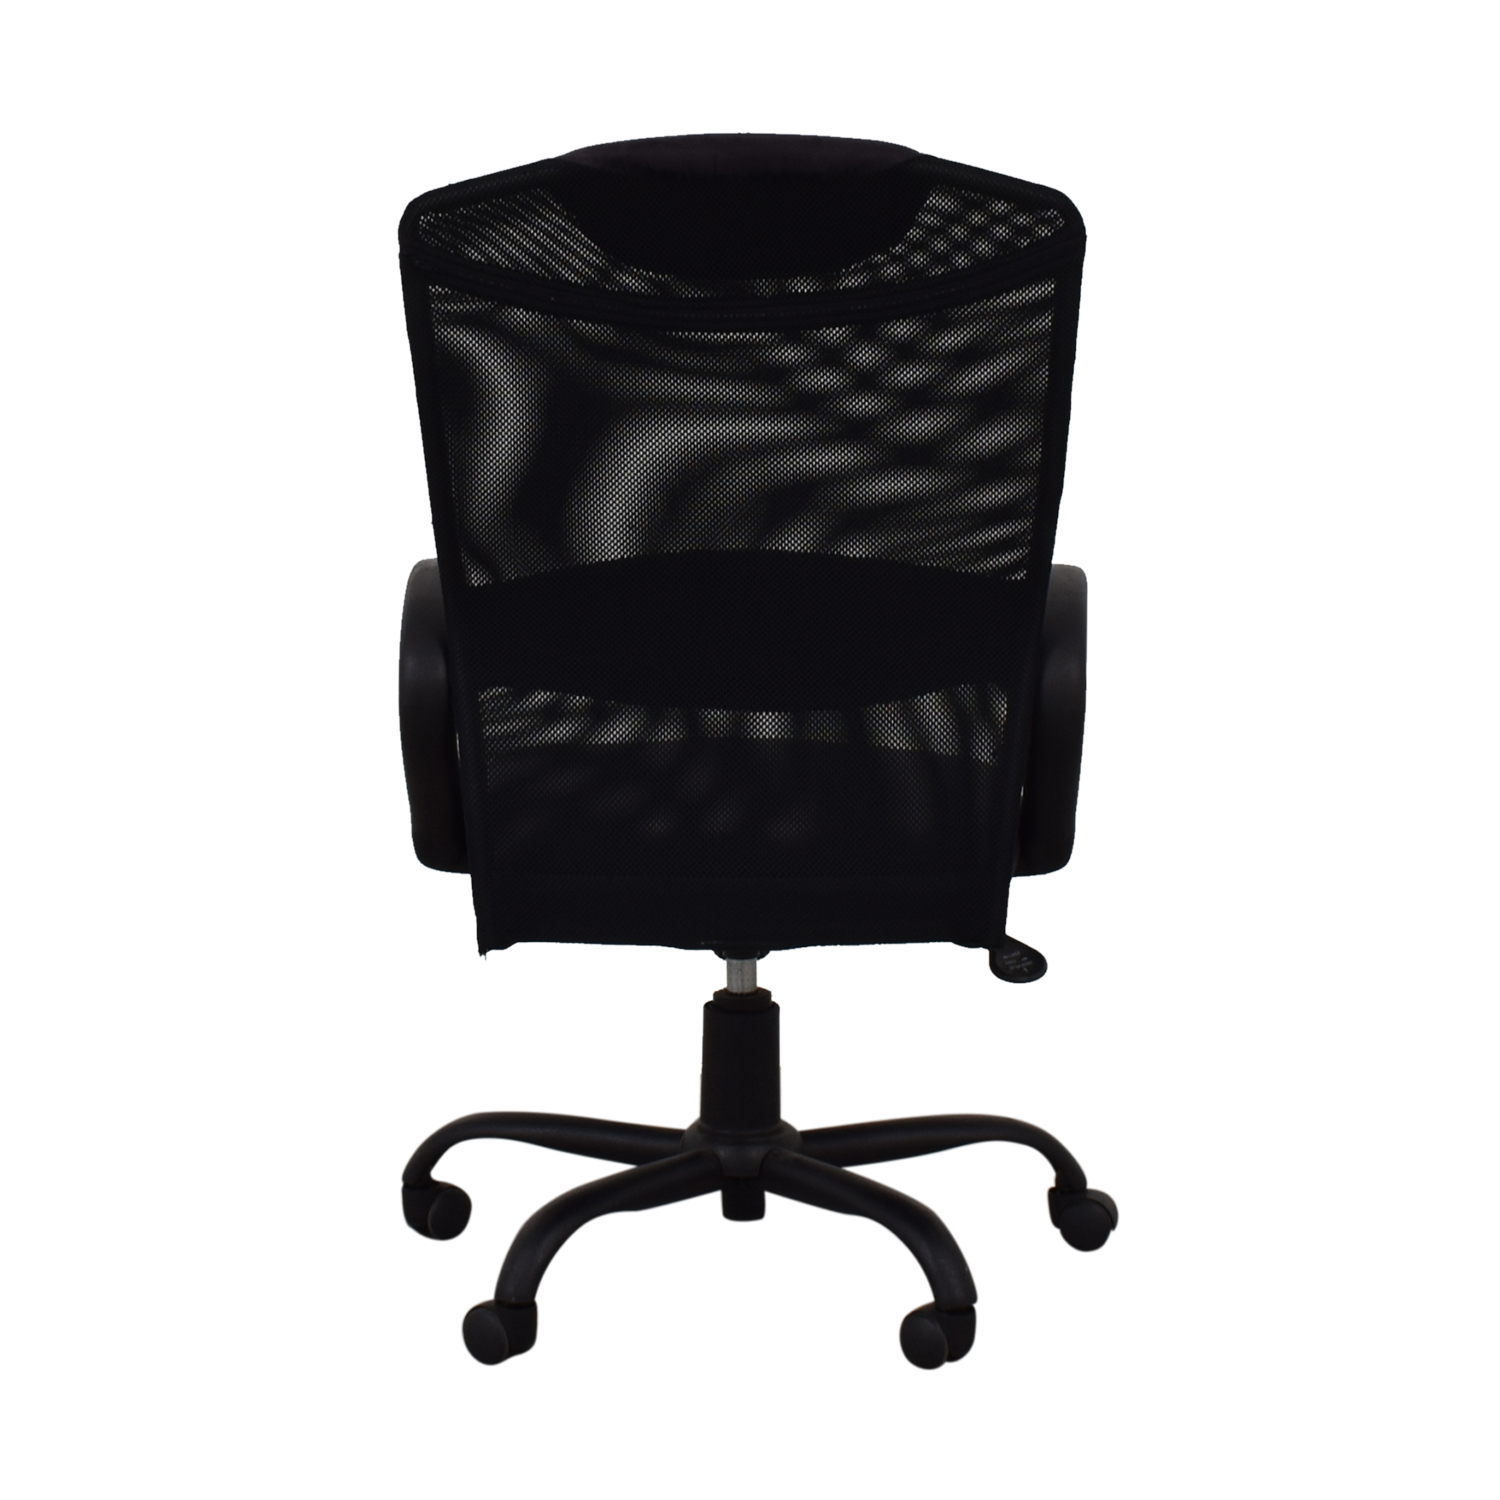 Black Ergonomic Desk Chair dimensions